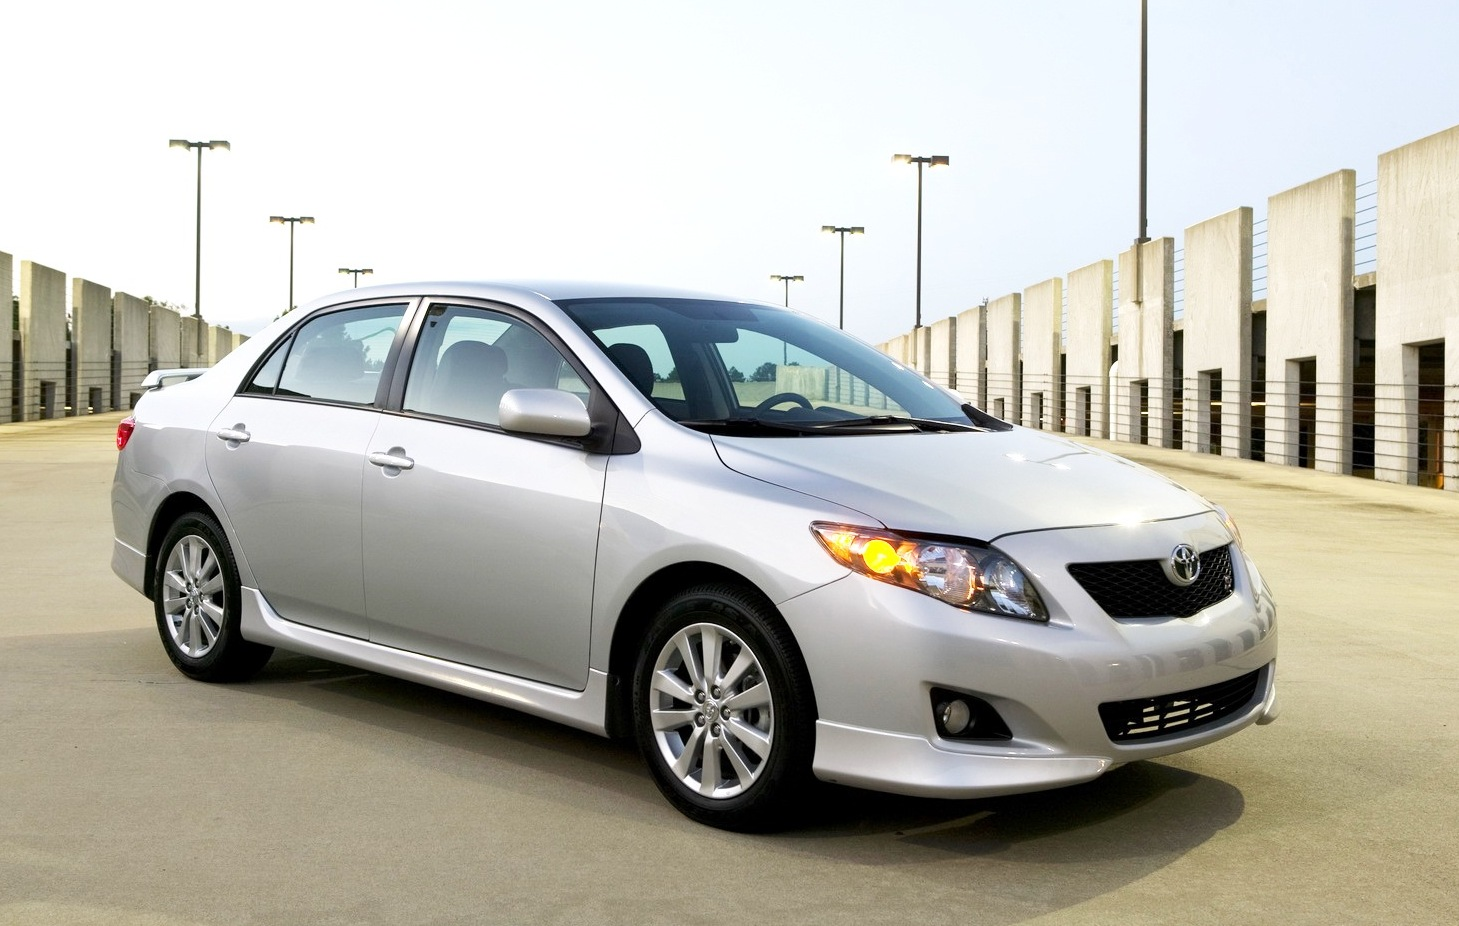 2014 corolla owners manual autos post. Black Bedroom Furniture Sets. Home Design Ideas